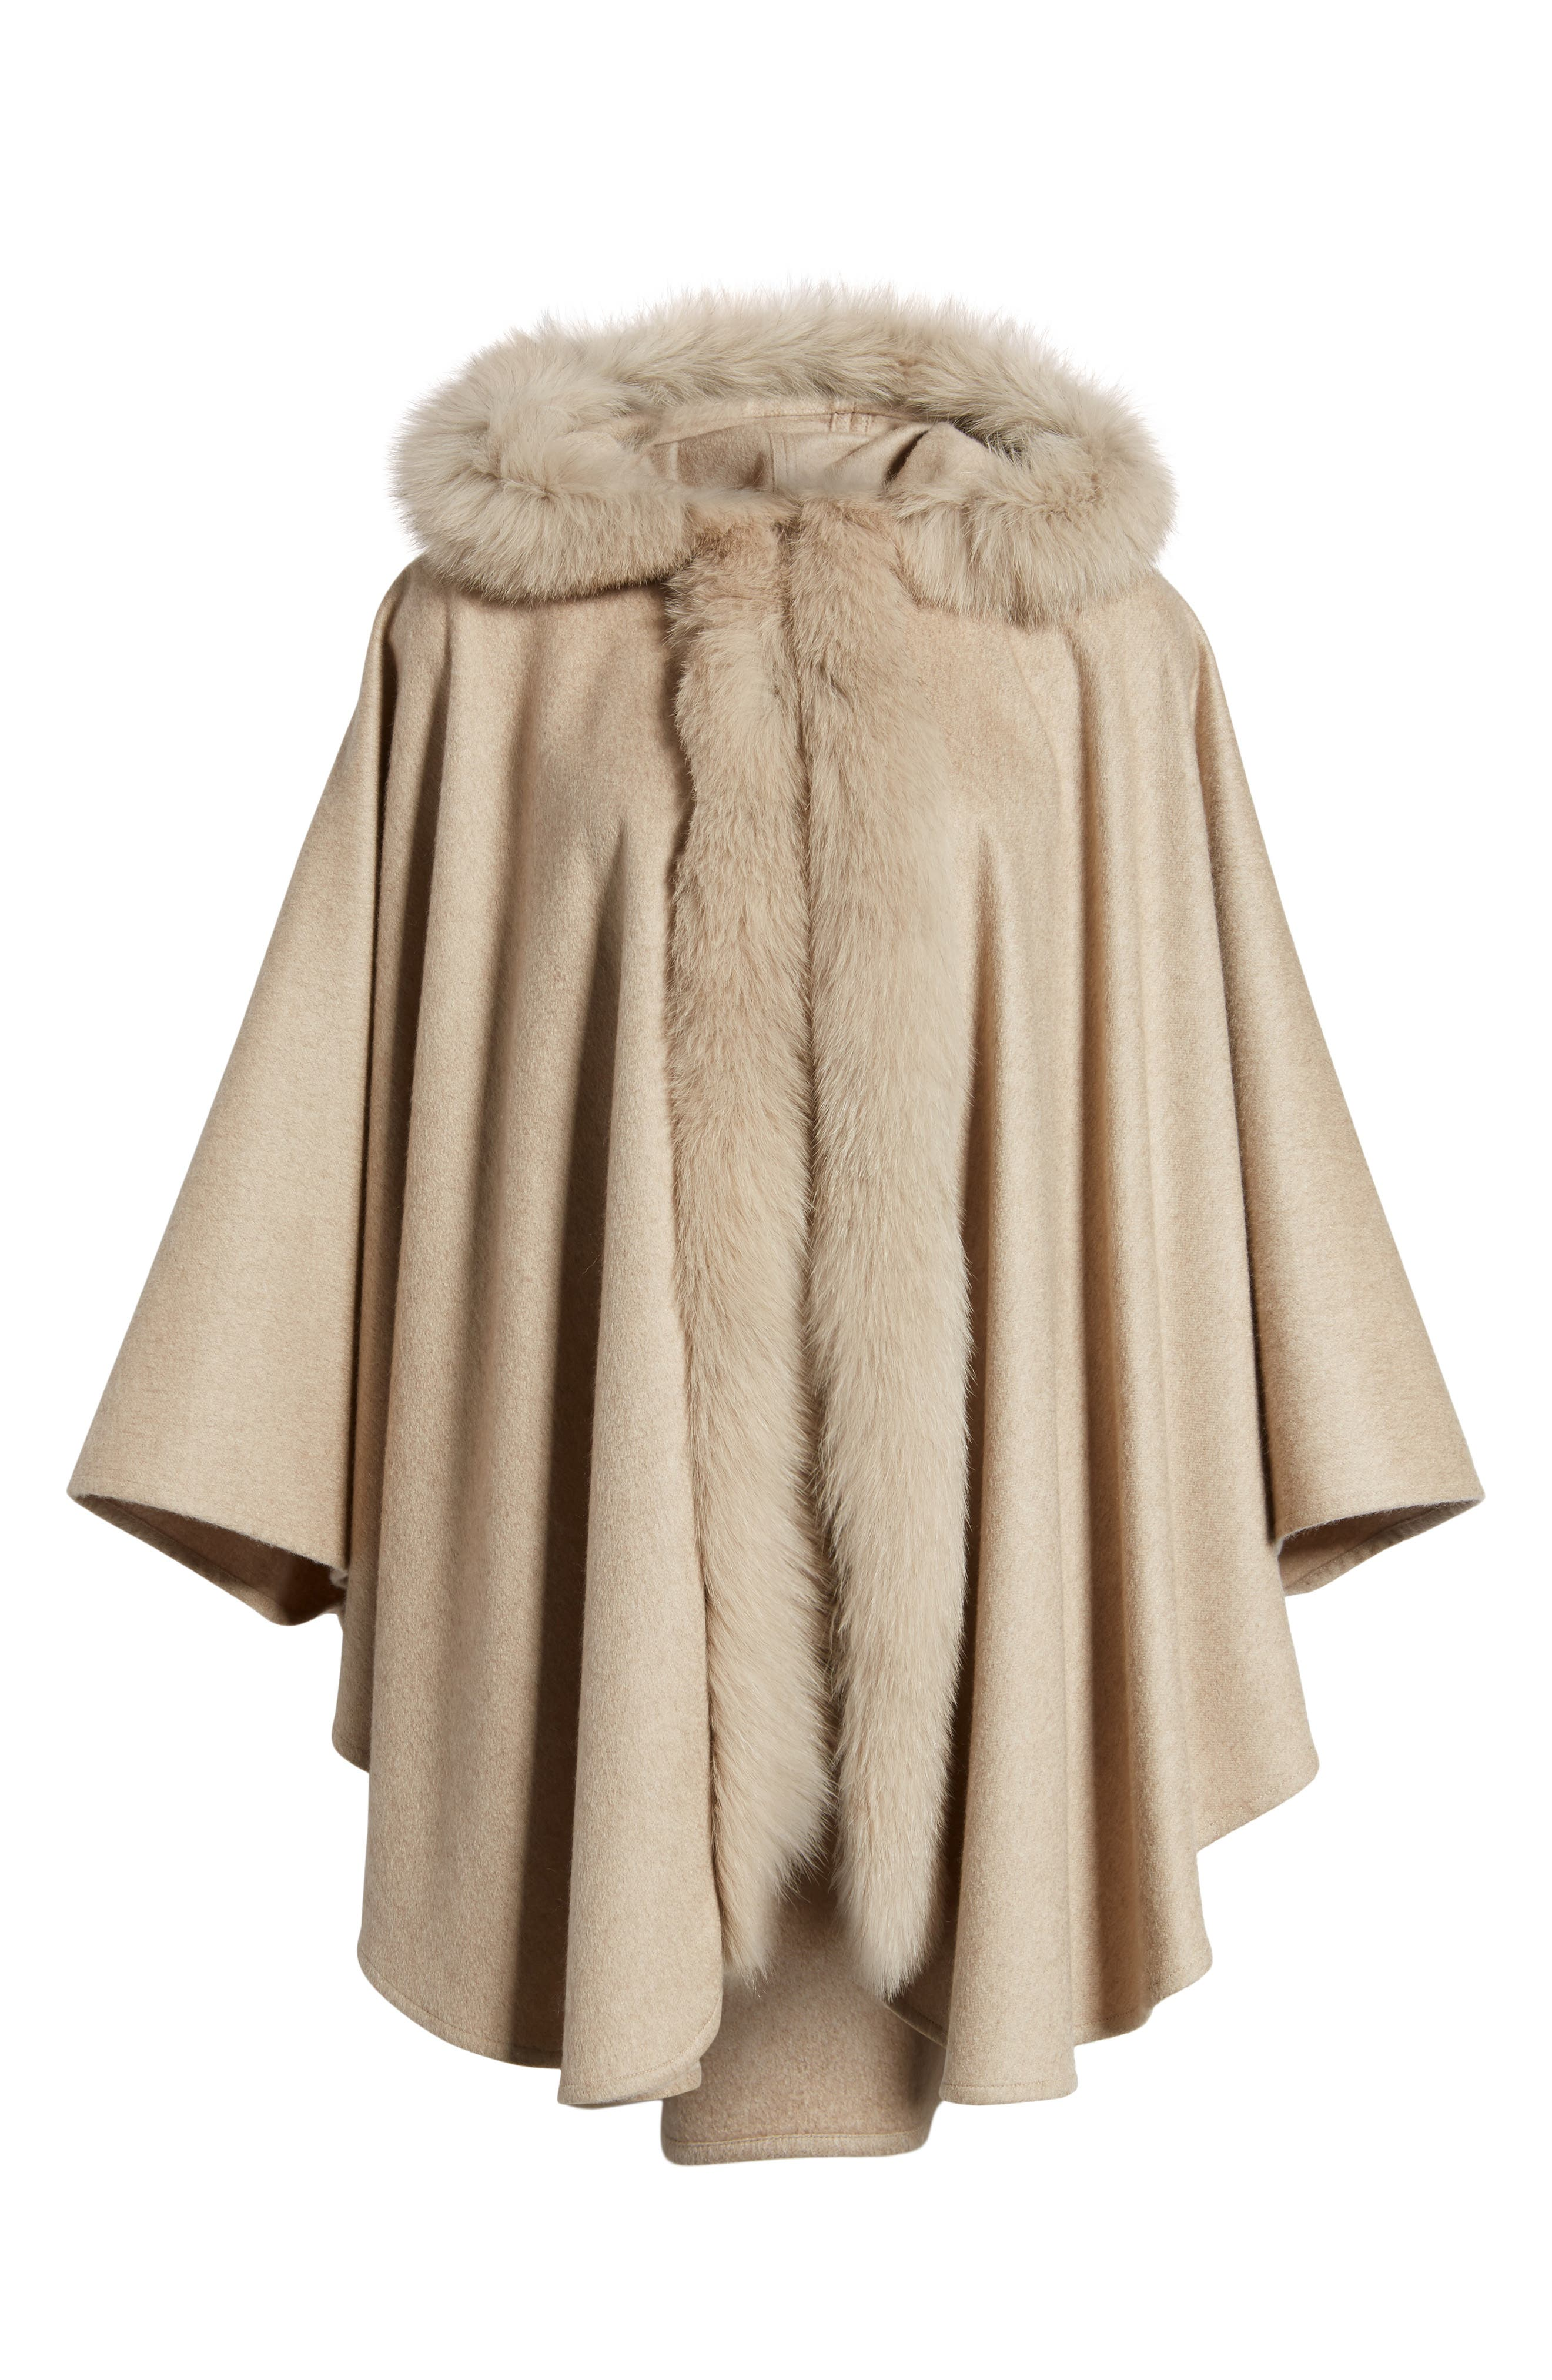 Cashmere Hooded Cape with Genuine Fox Fur Trim,                             Alternate thumbnail 6, color,                             020